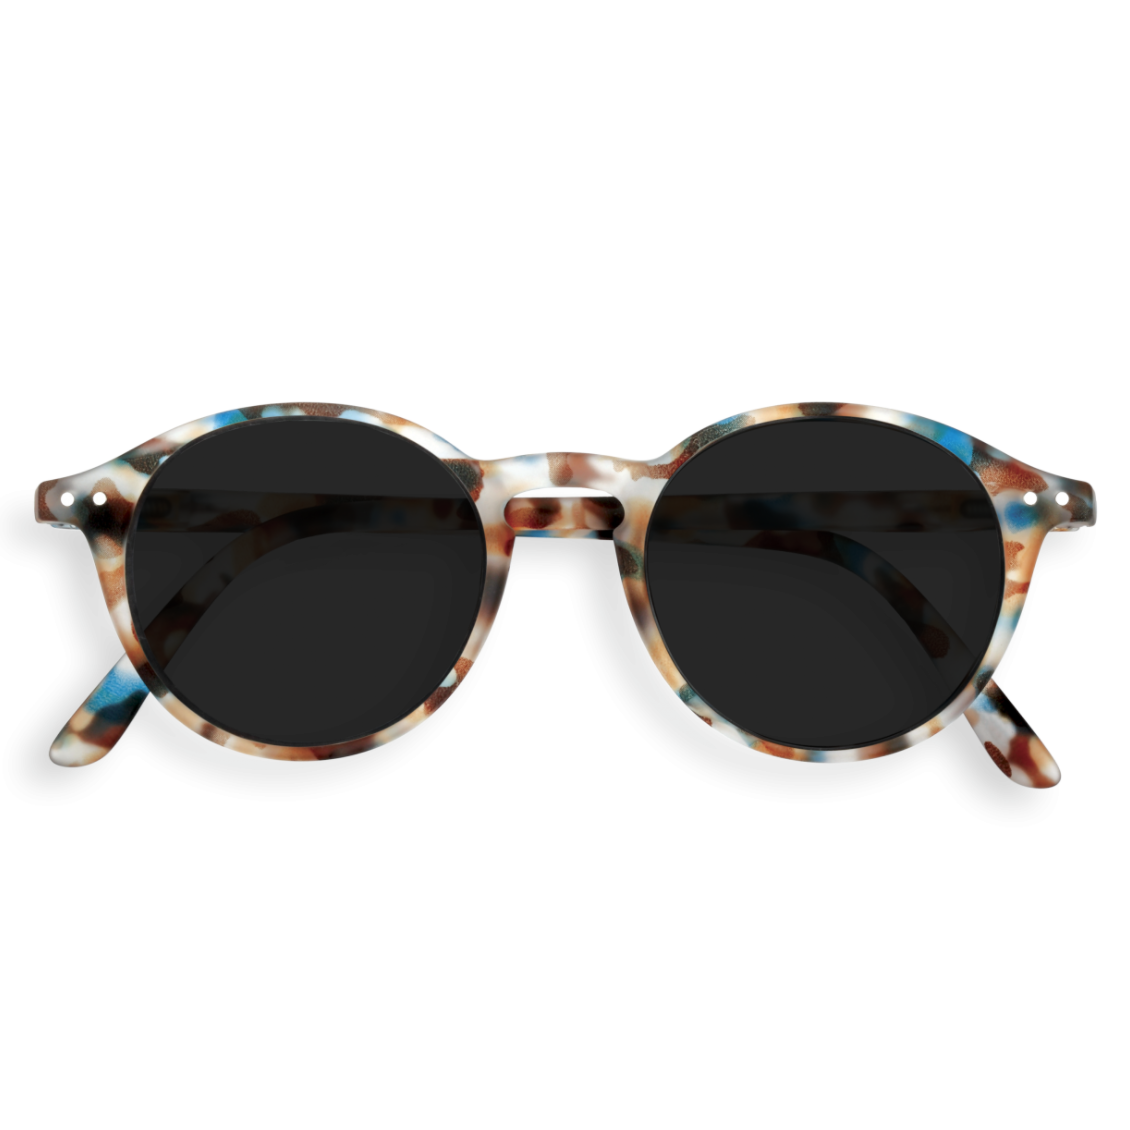 Sunglasses #D - Blue Tortoise